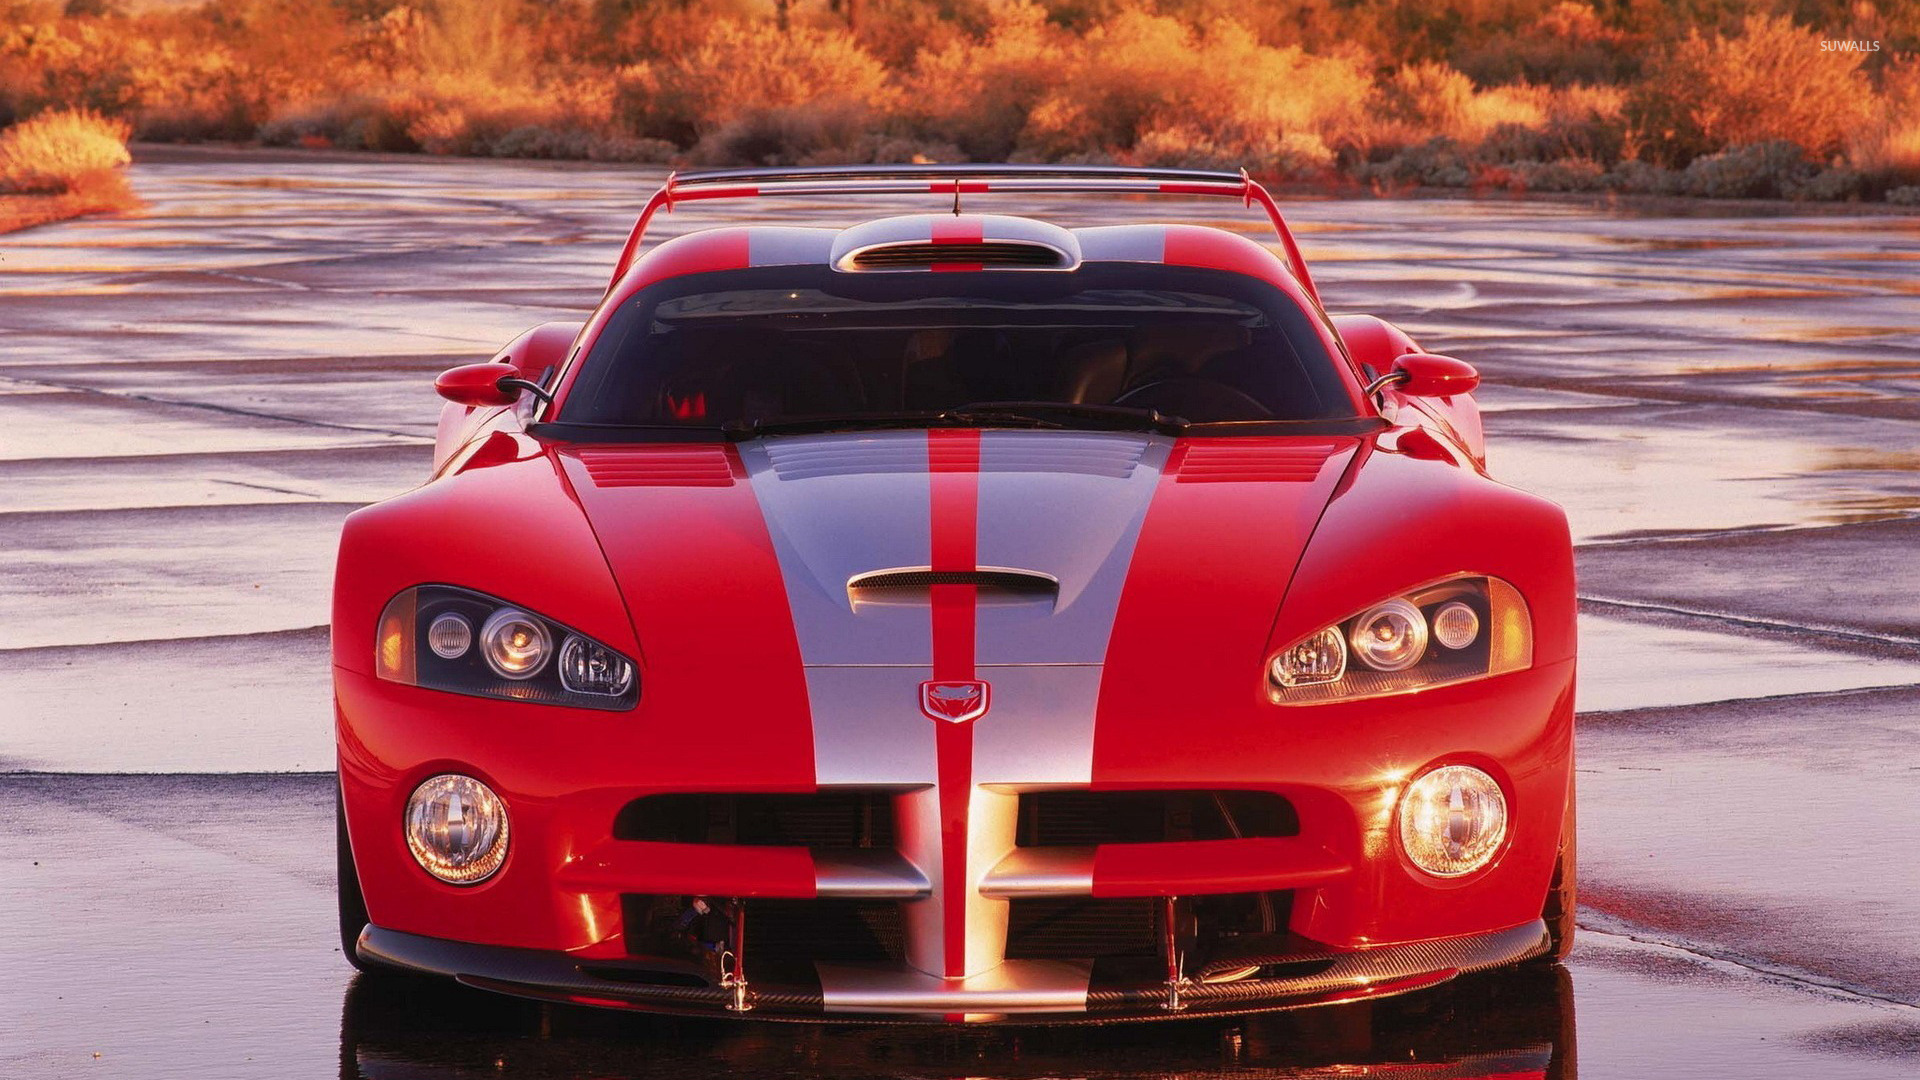 chrysler viper gts r front view wallpaper car wallpapers. Black Bedroom Furniture Sets. Home Design Ideas